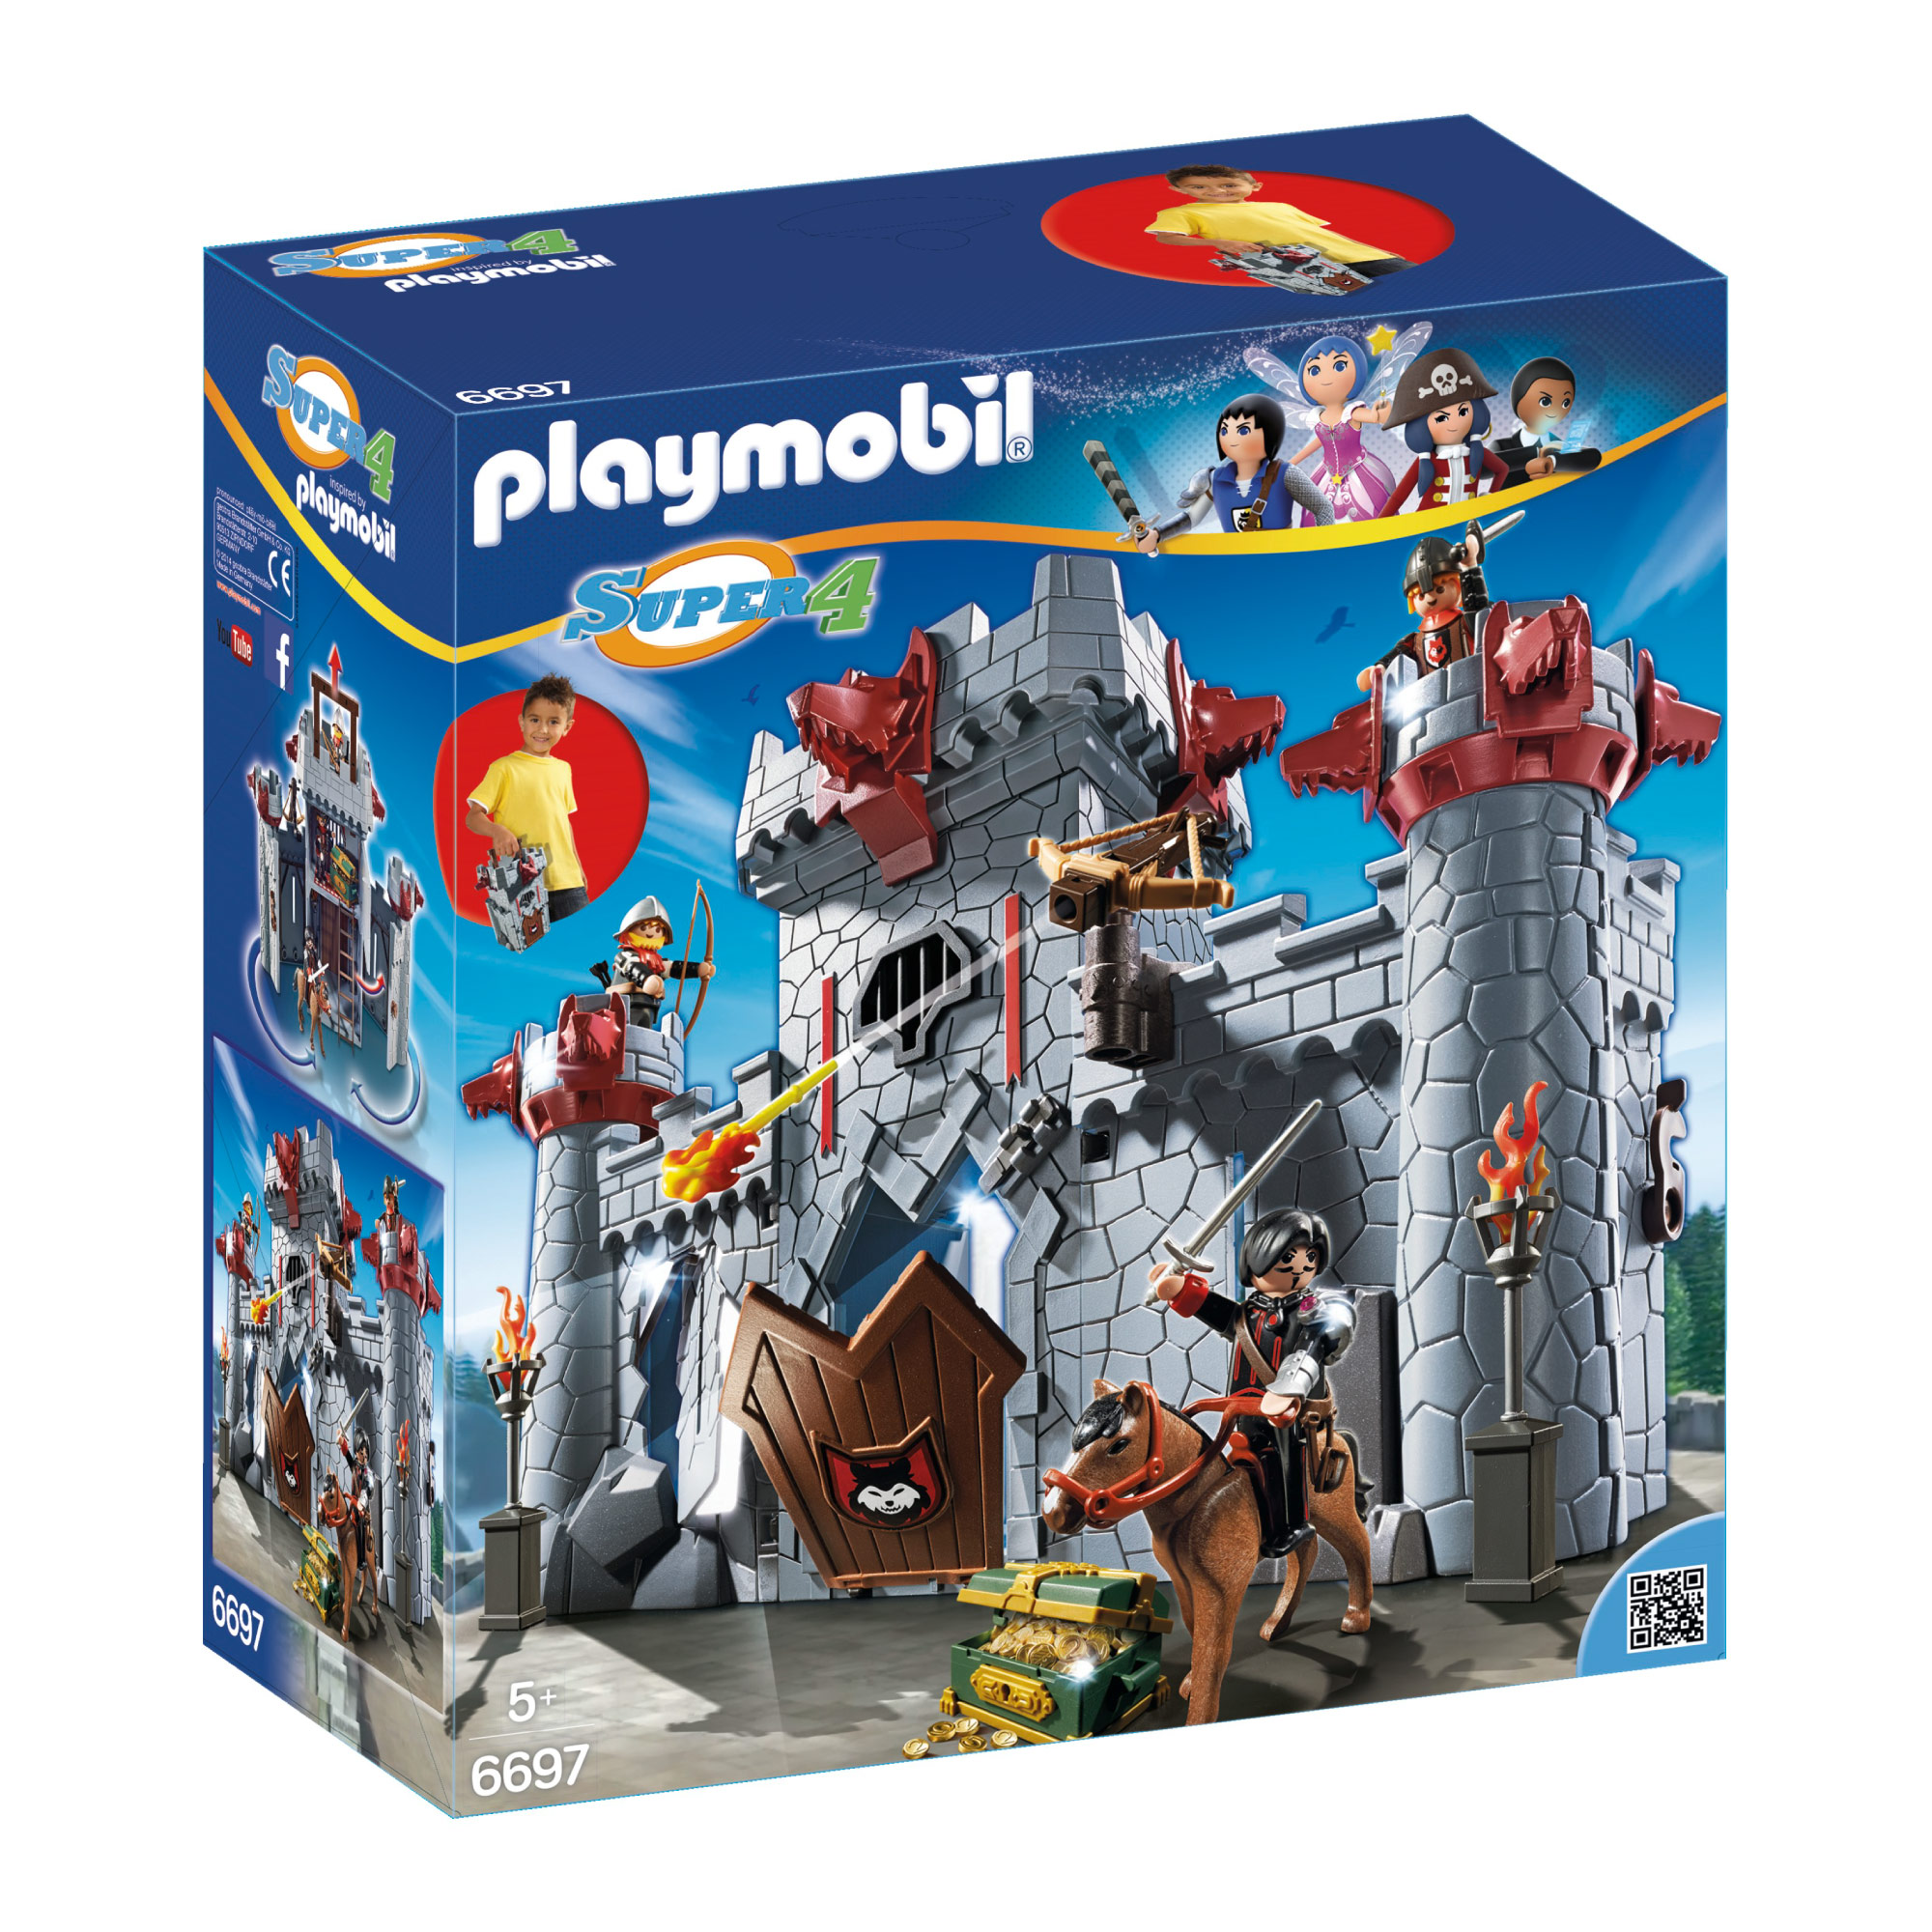 Playmobil Super 4 Take Along Black Baron's Castle 6697